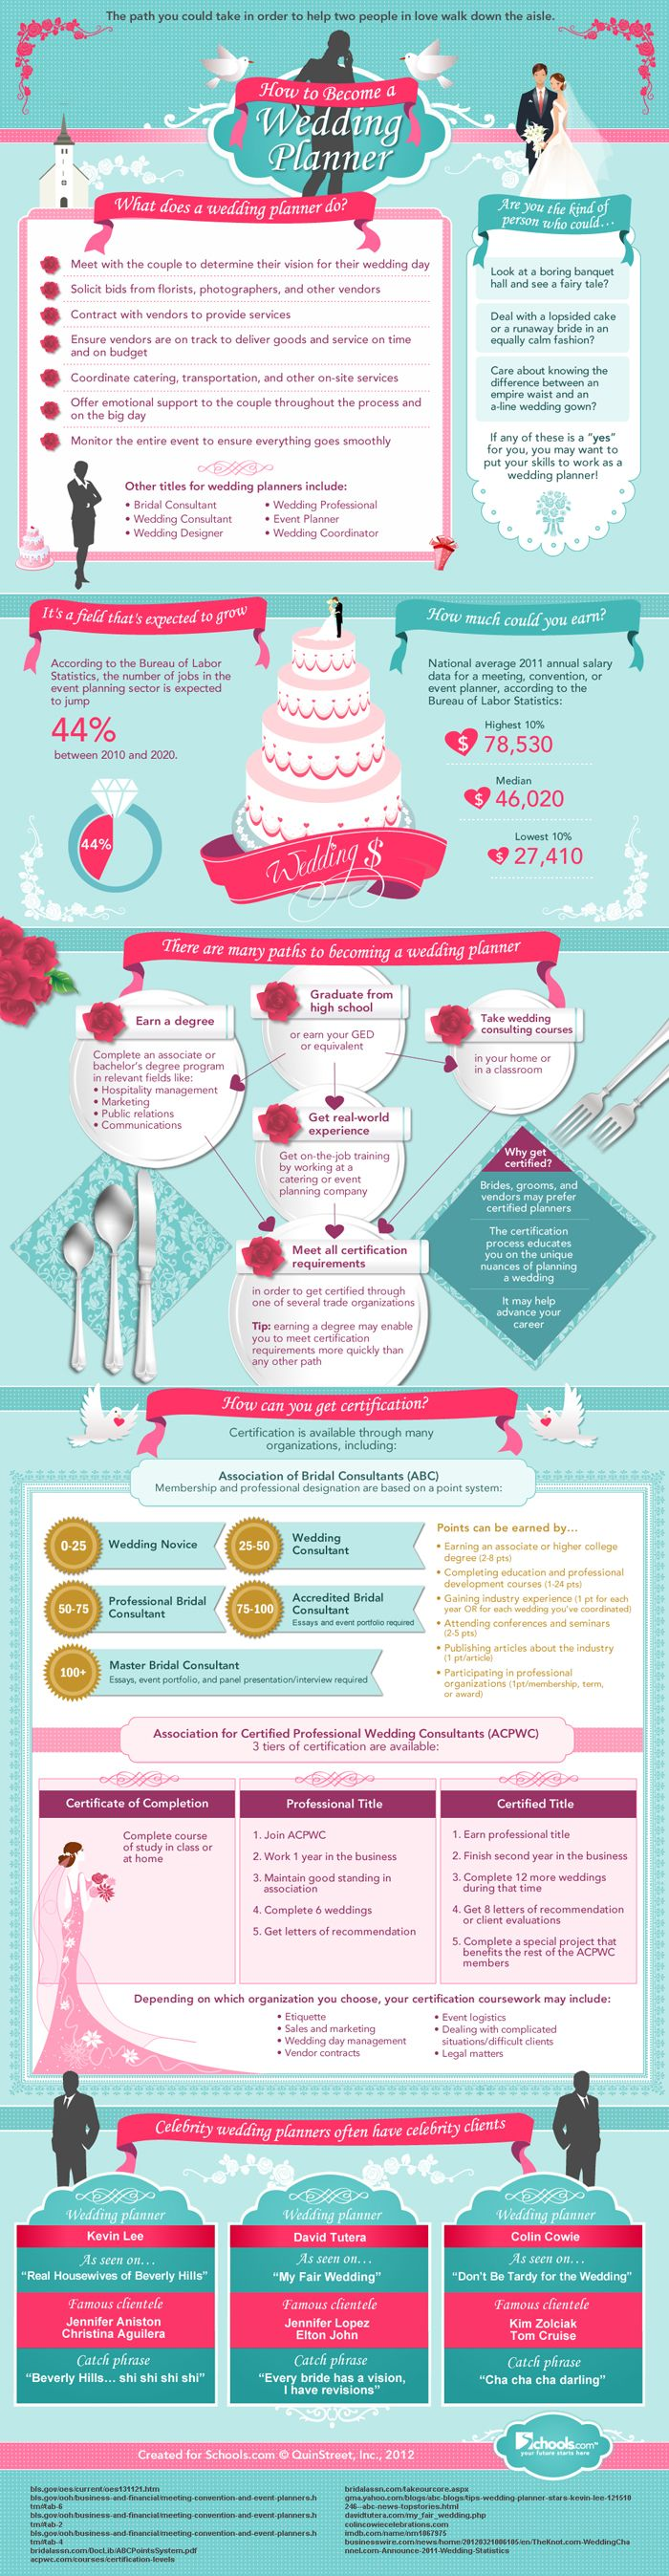 Wedding Planner: How To Become A Big Day Planner (INFOGRAPHIC)